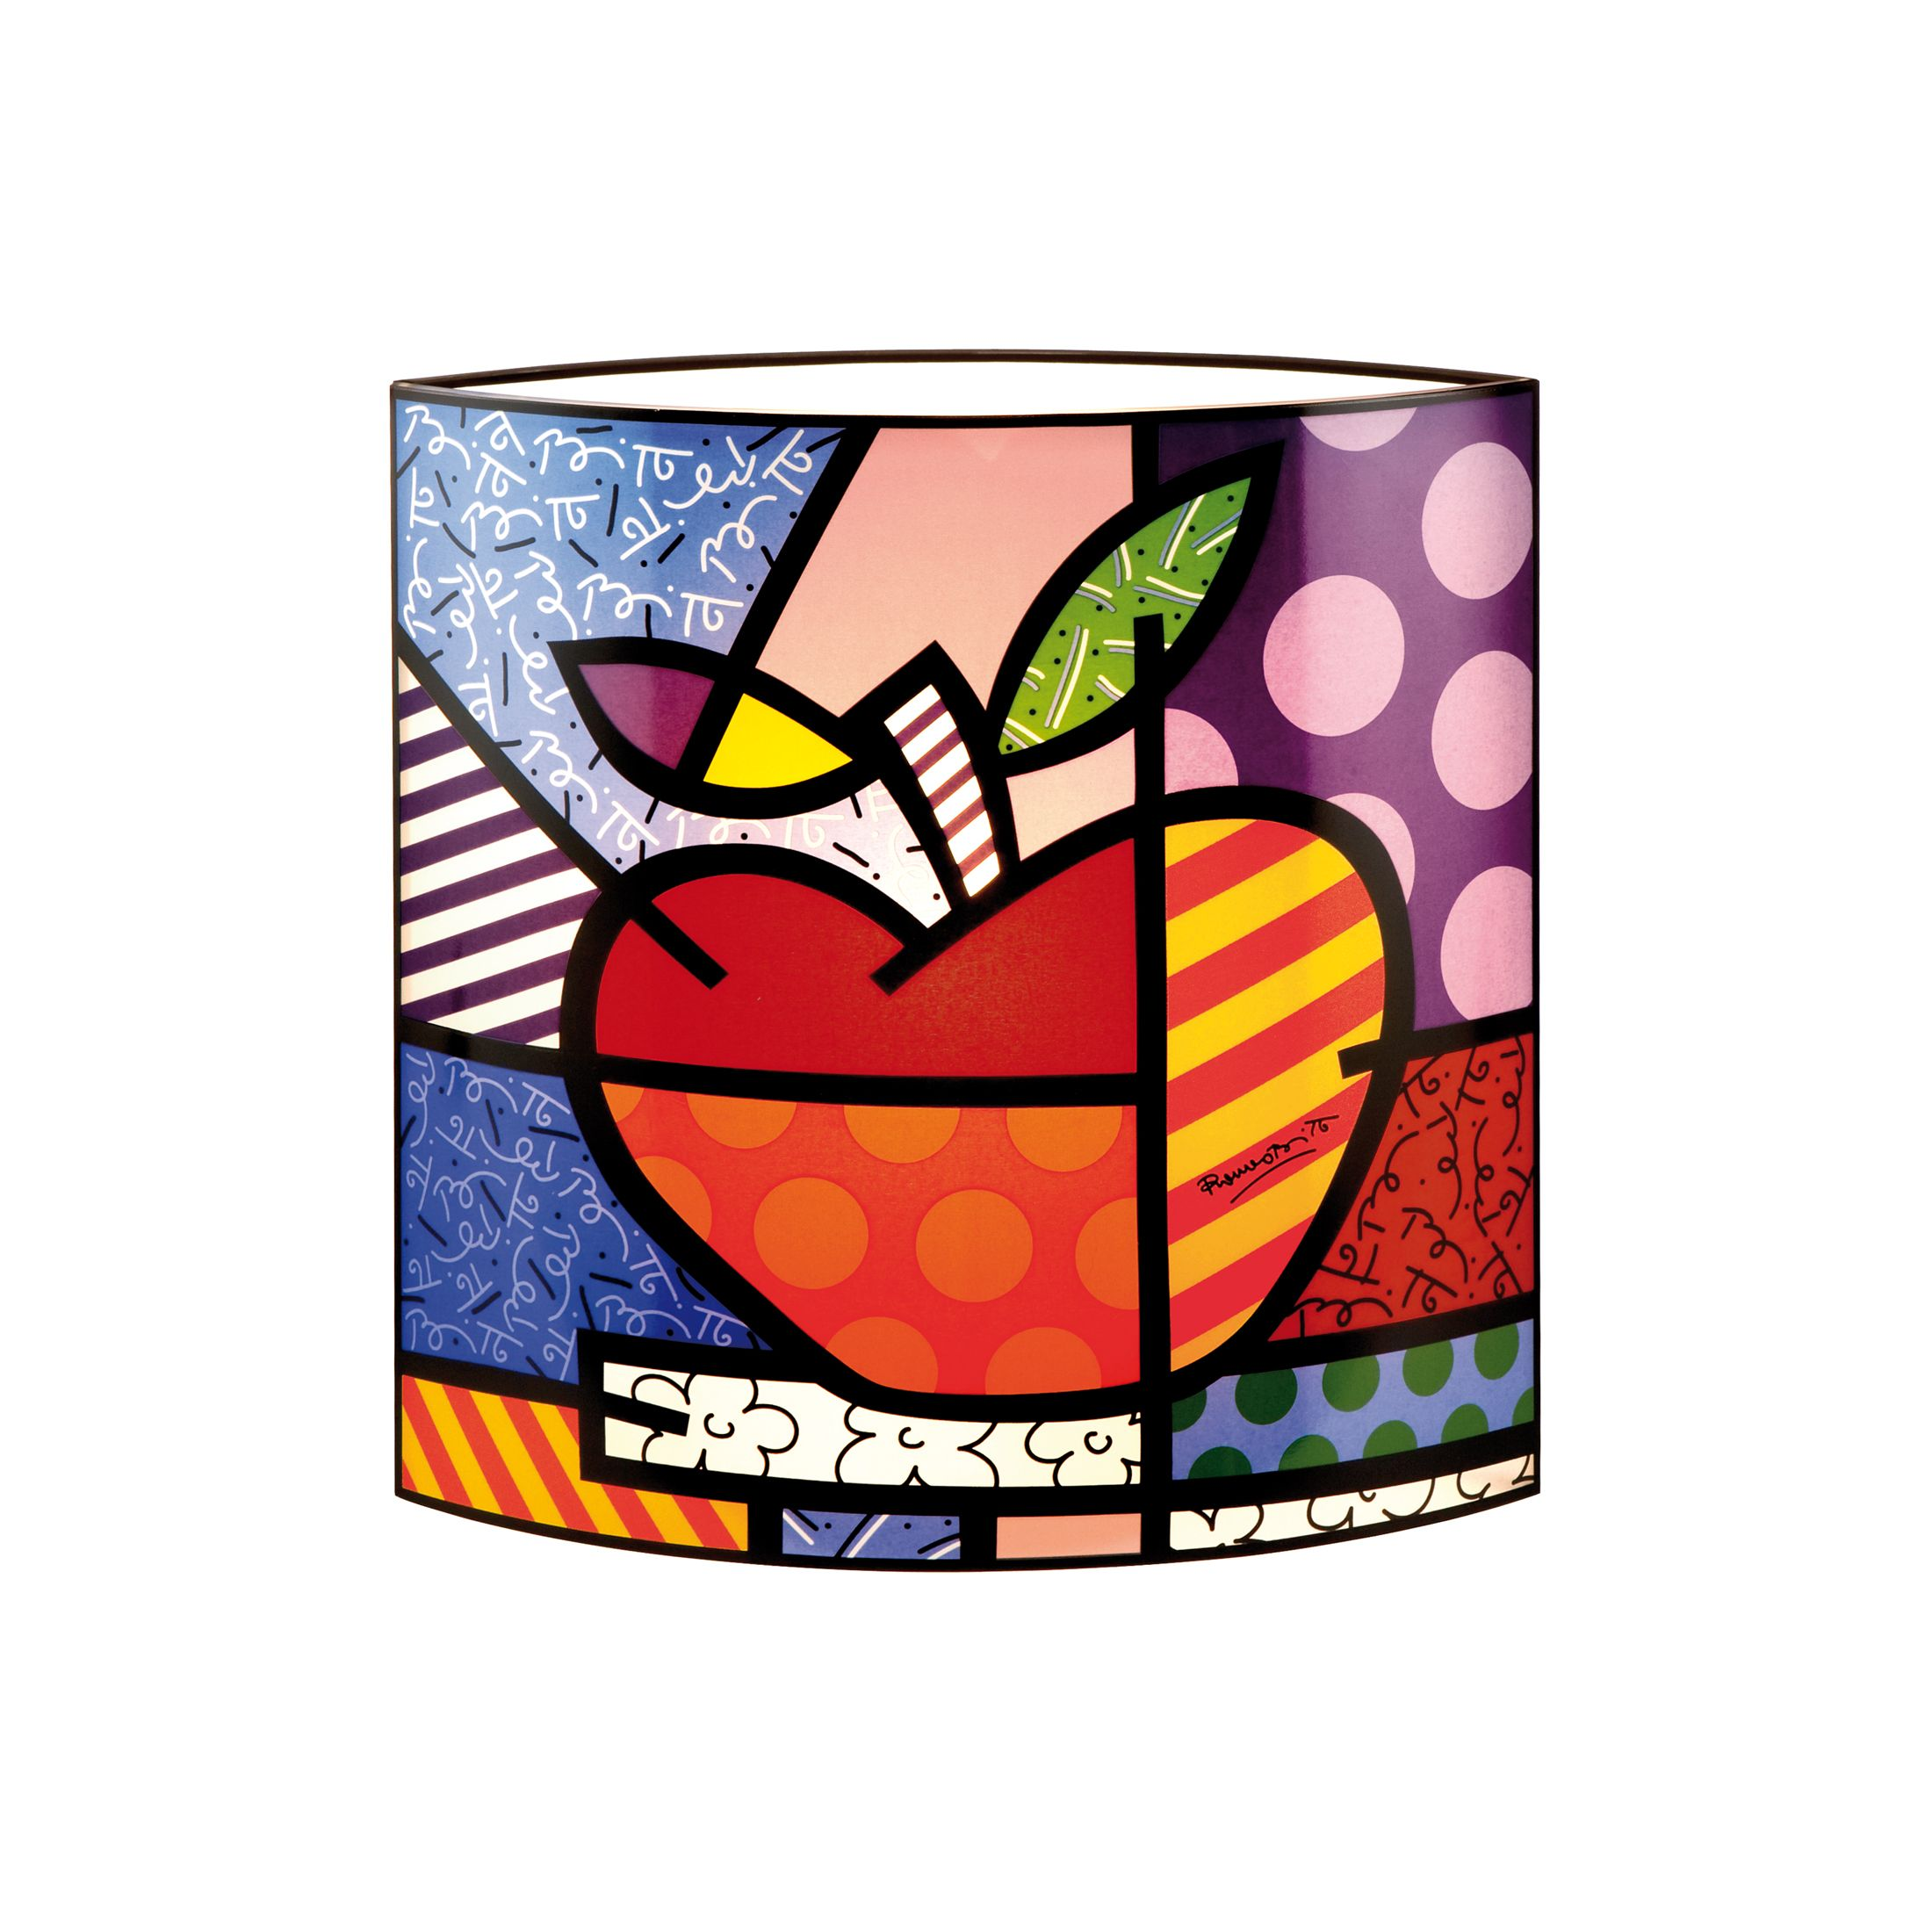 Lampe à poser Big Apple 25 x 25 cm Pop Art Romero Britto